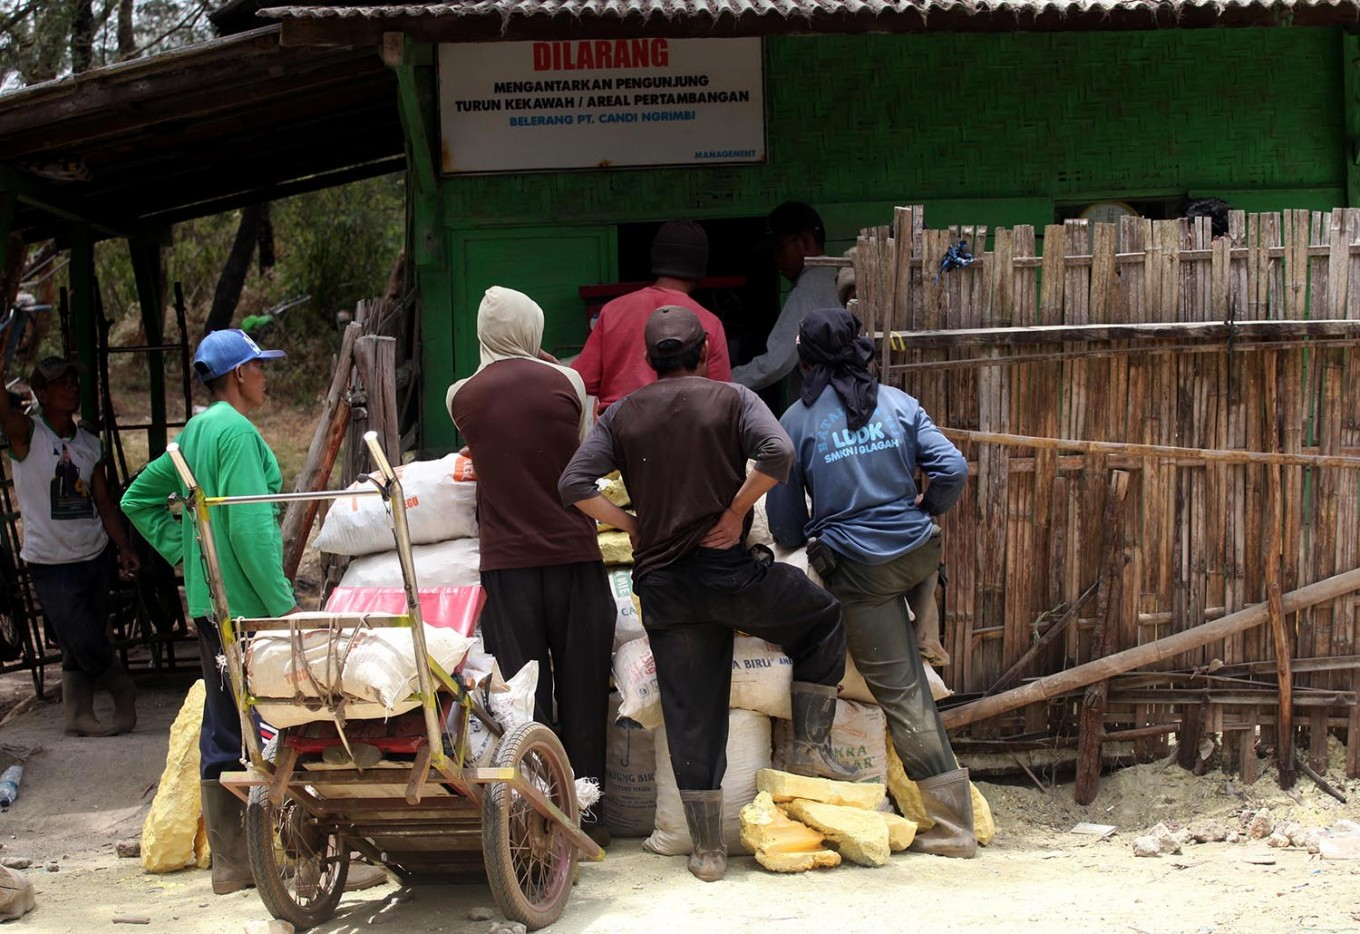 Miners line up to weigh their haul at 10 a.m. JP/Boy T Harjanto